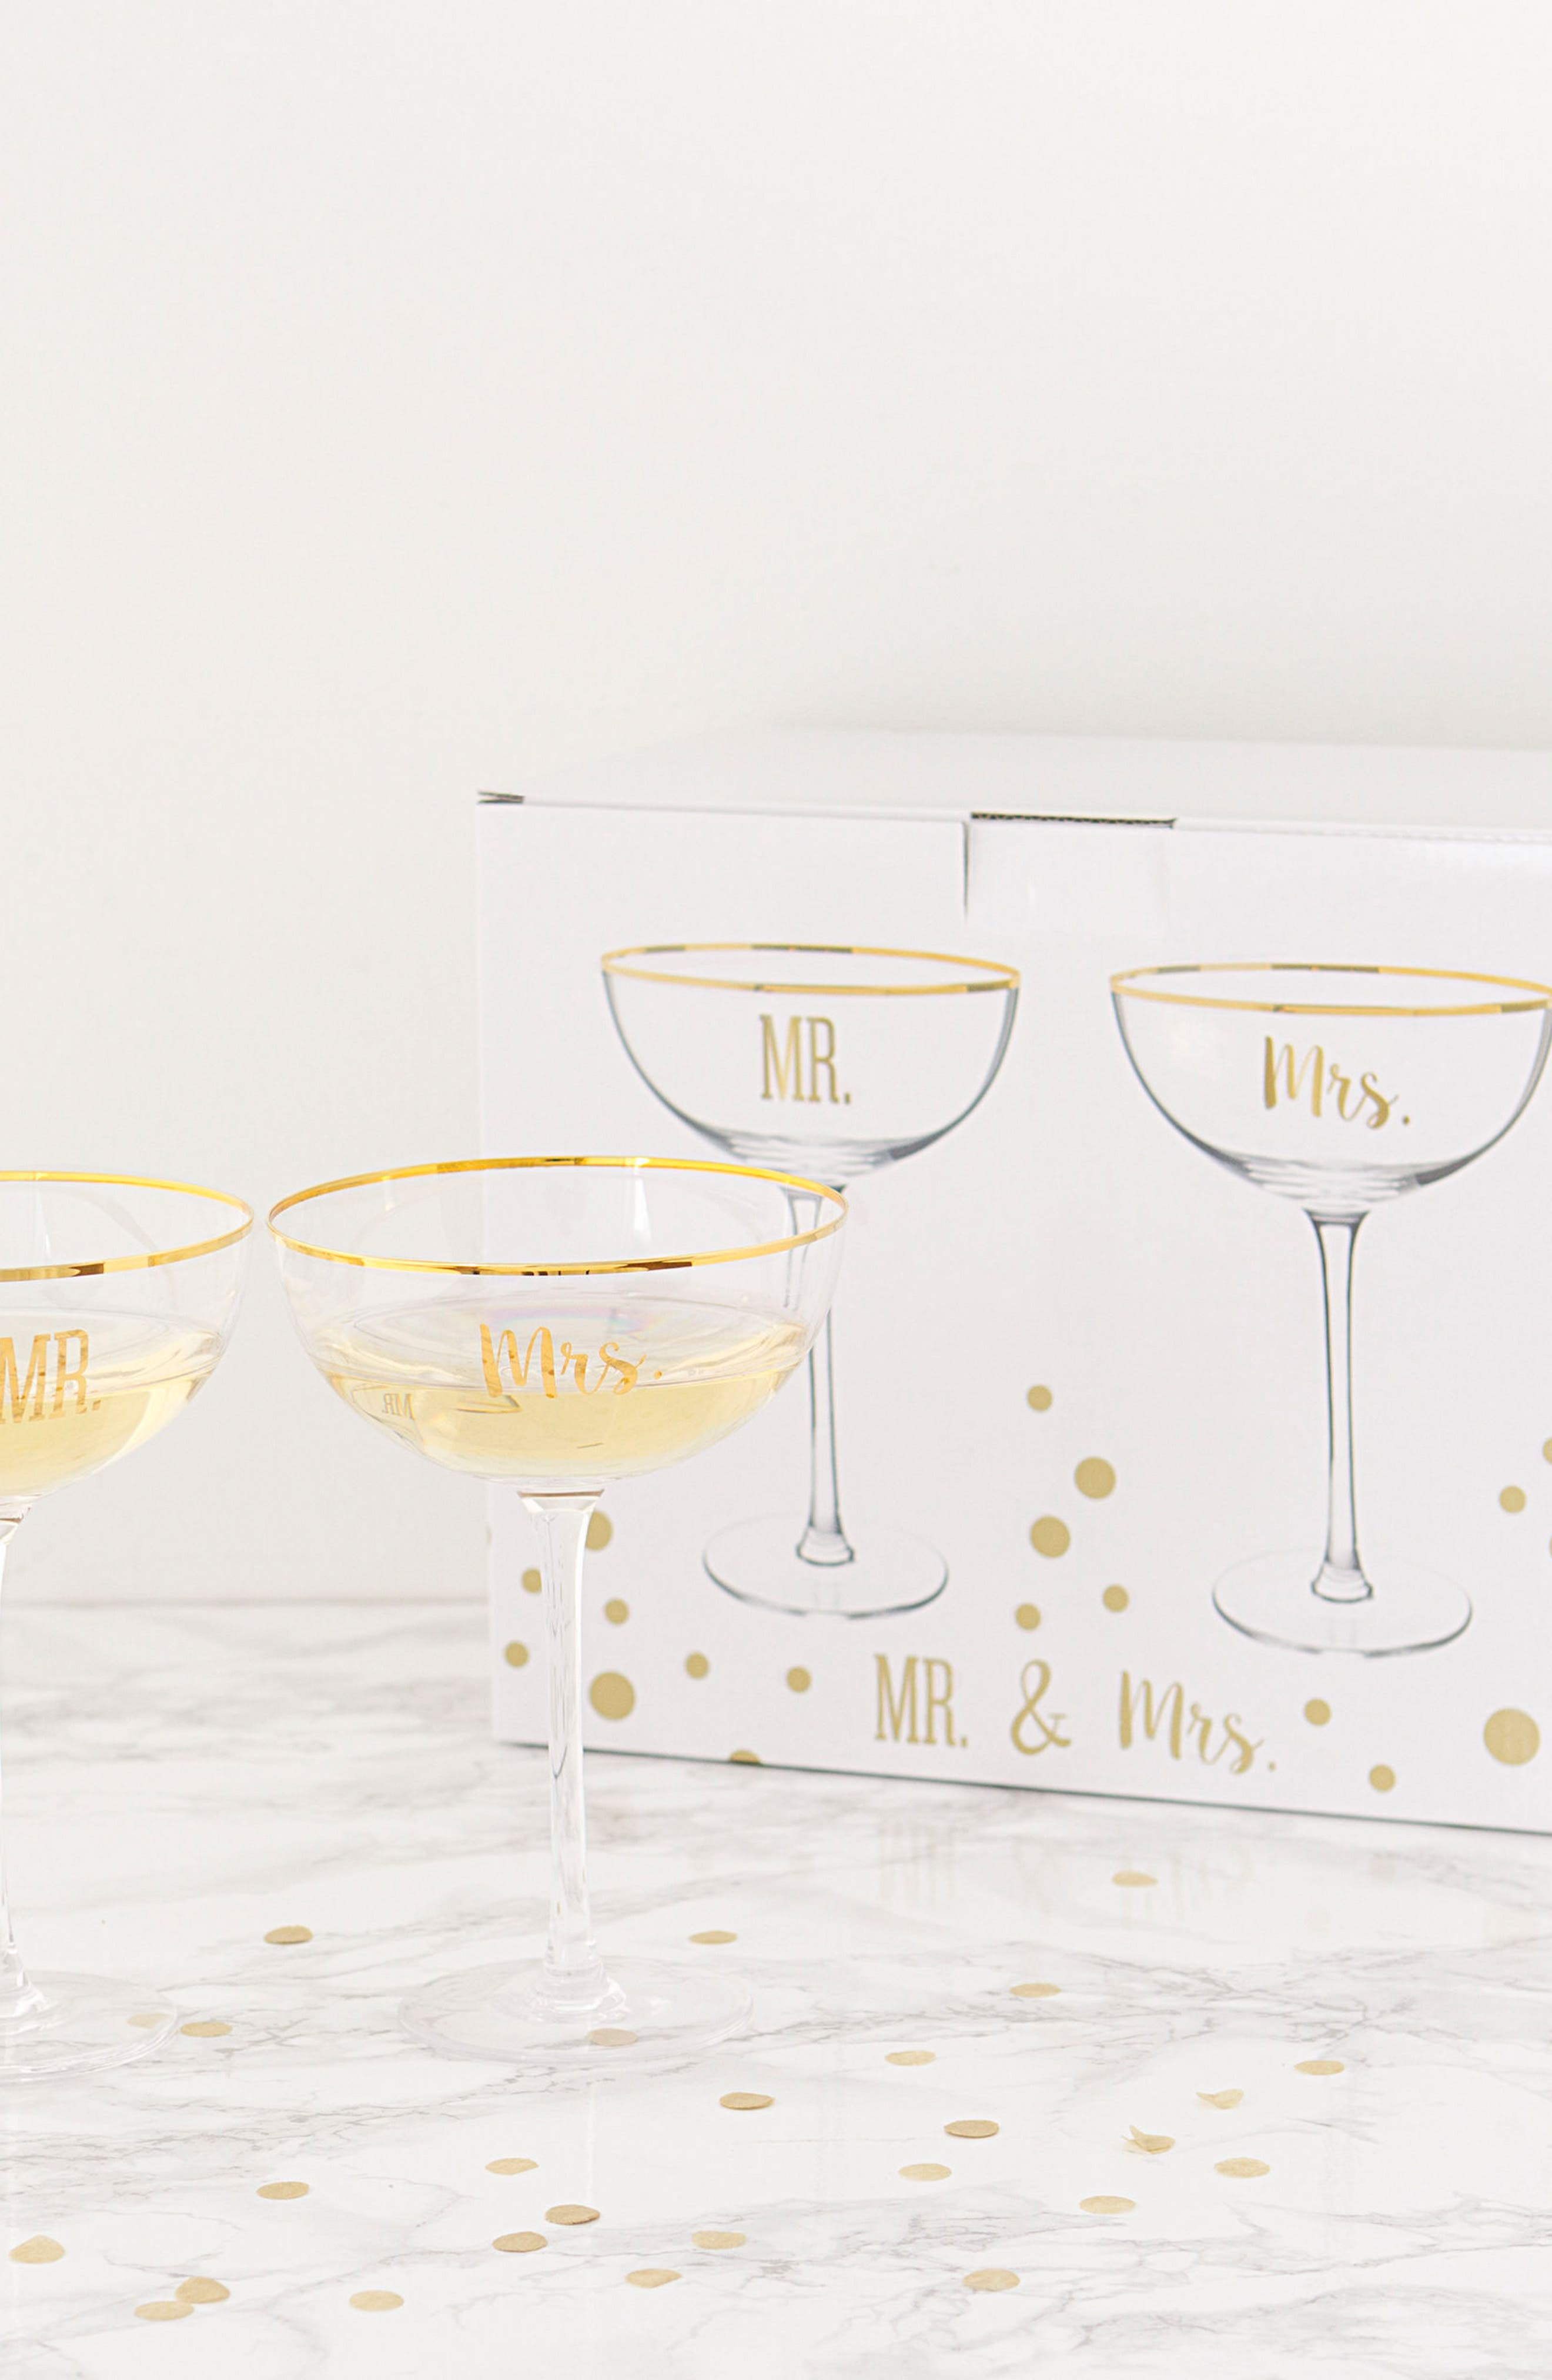 Mr. & Mrs. Set of 2 Champagne Coupe Toasting Glasses,                             Alternate thumbnail 3, color,                             710